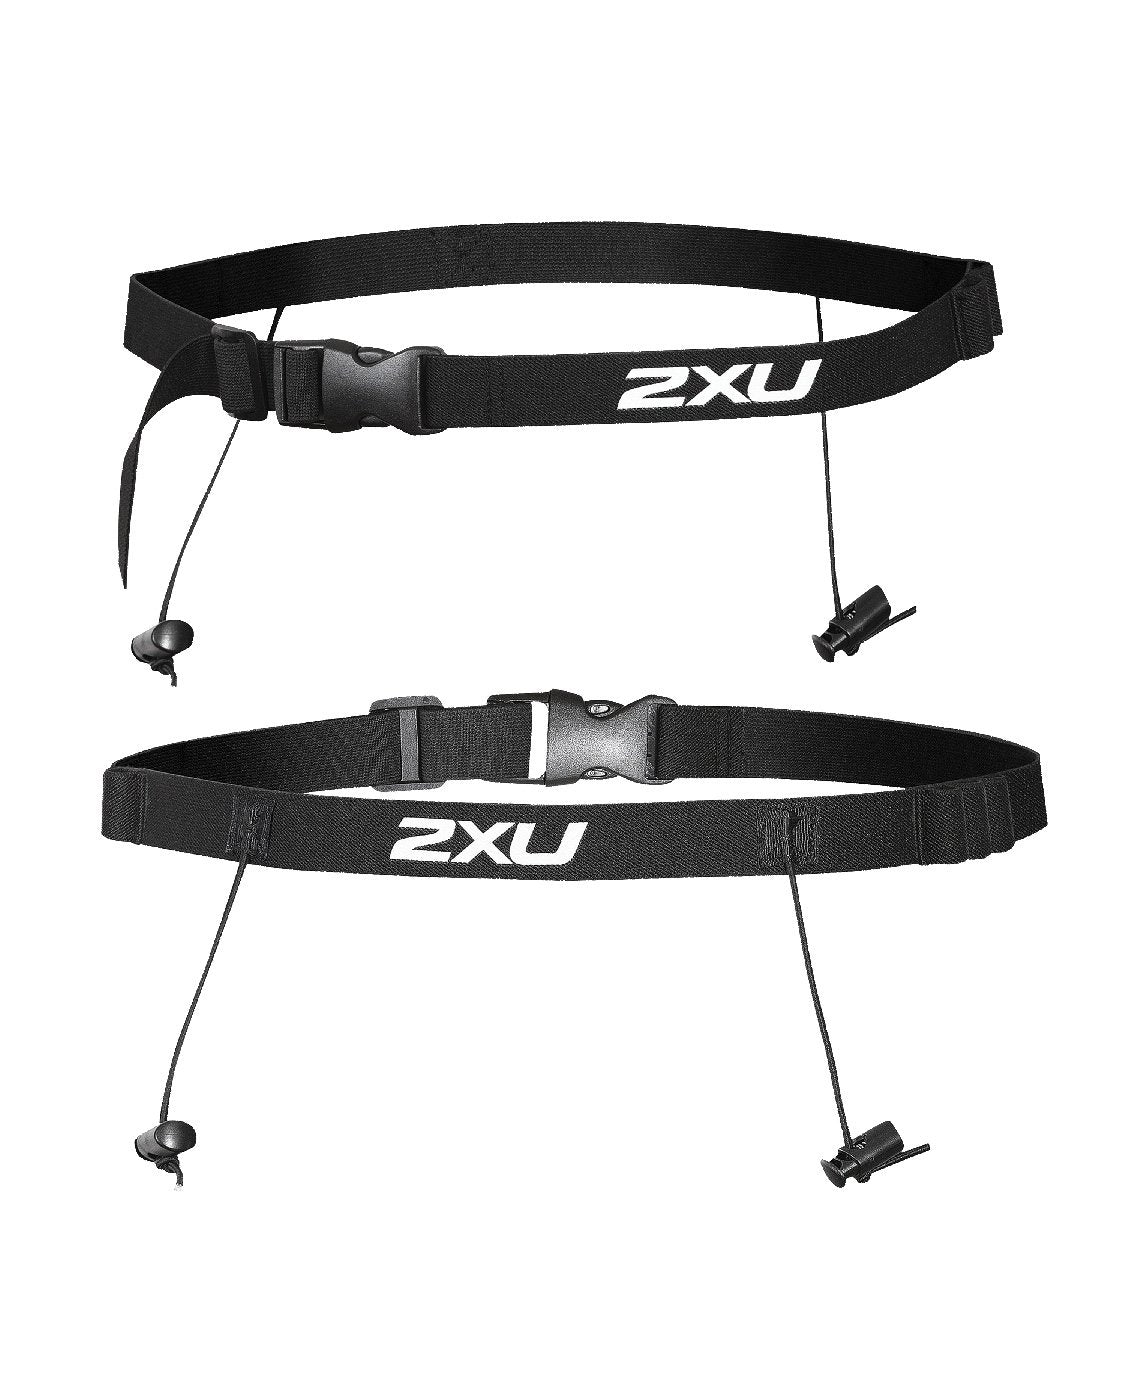 2XU Nutrition Race Belt